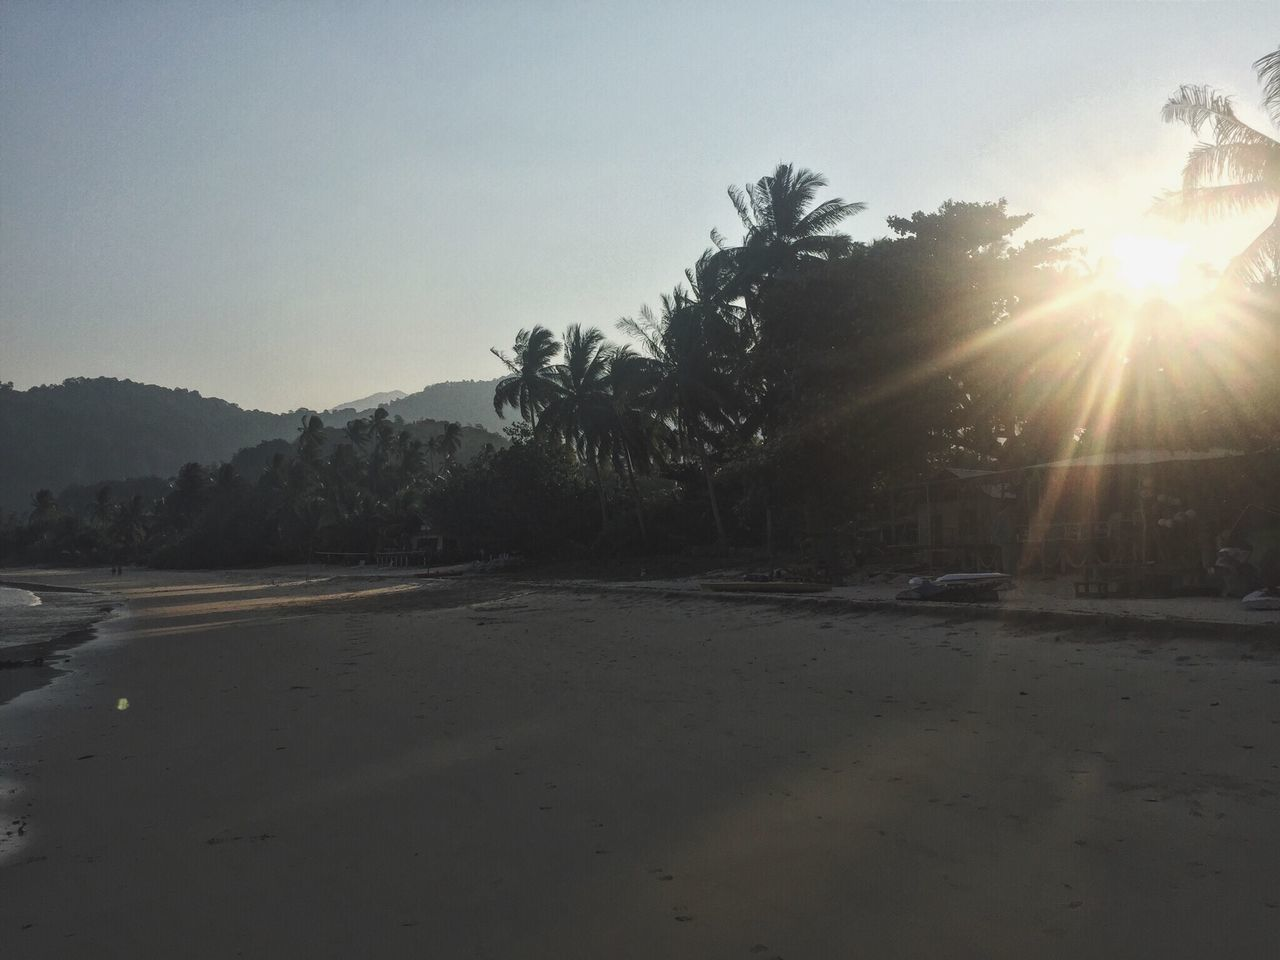 Tiomanisland Tioman Island Tioman Paradise Paradise Beach Sunset Juara Beach Nature Places To Visit Places To See Before You Die Travel Destinations Idyllic Nature At Its Best Sunbeam Sunrays Through The Branches Trees Beach Light Long Journey Sky Clouds And Sky Tropical Paradise Tropical Island